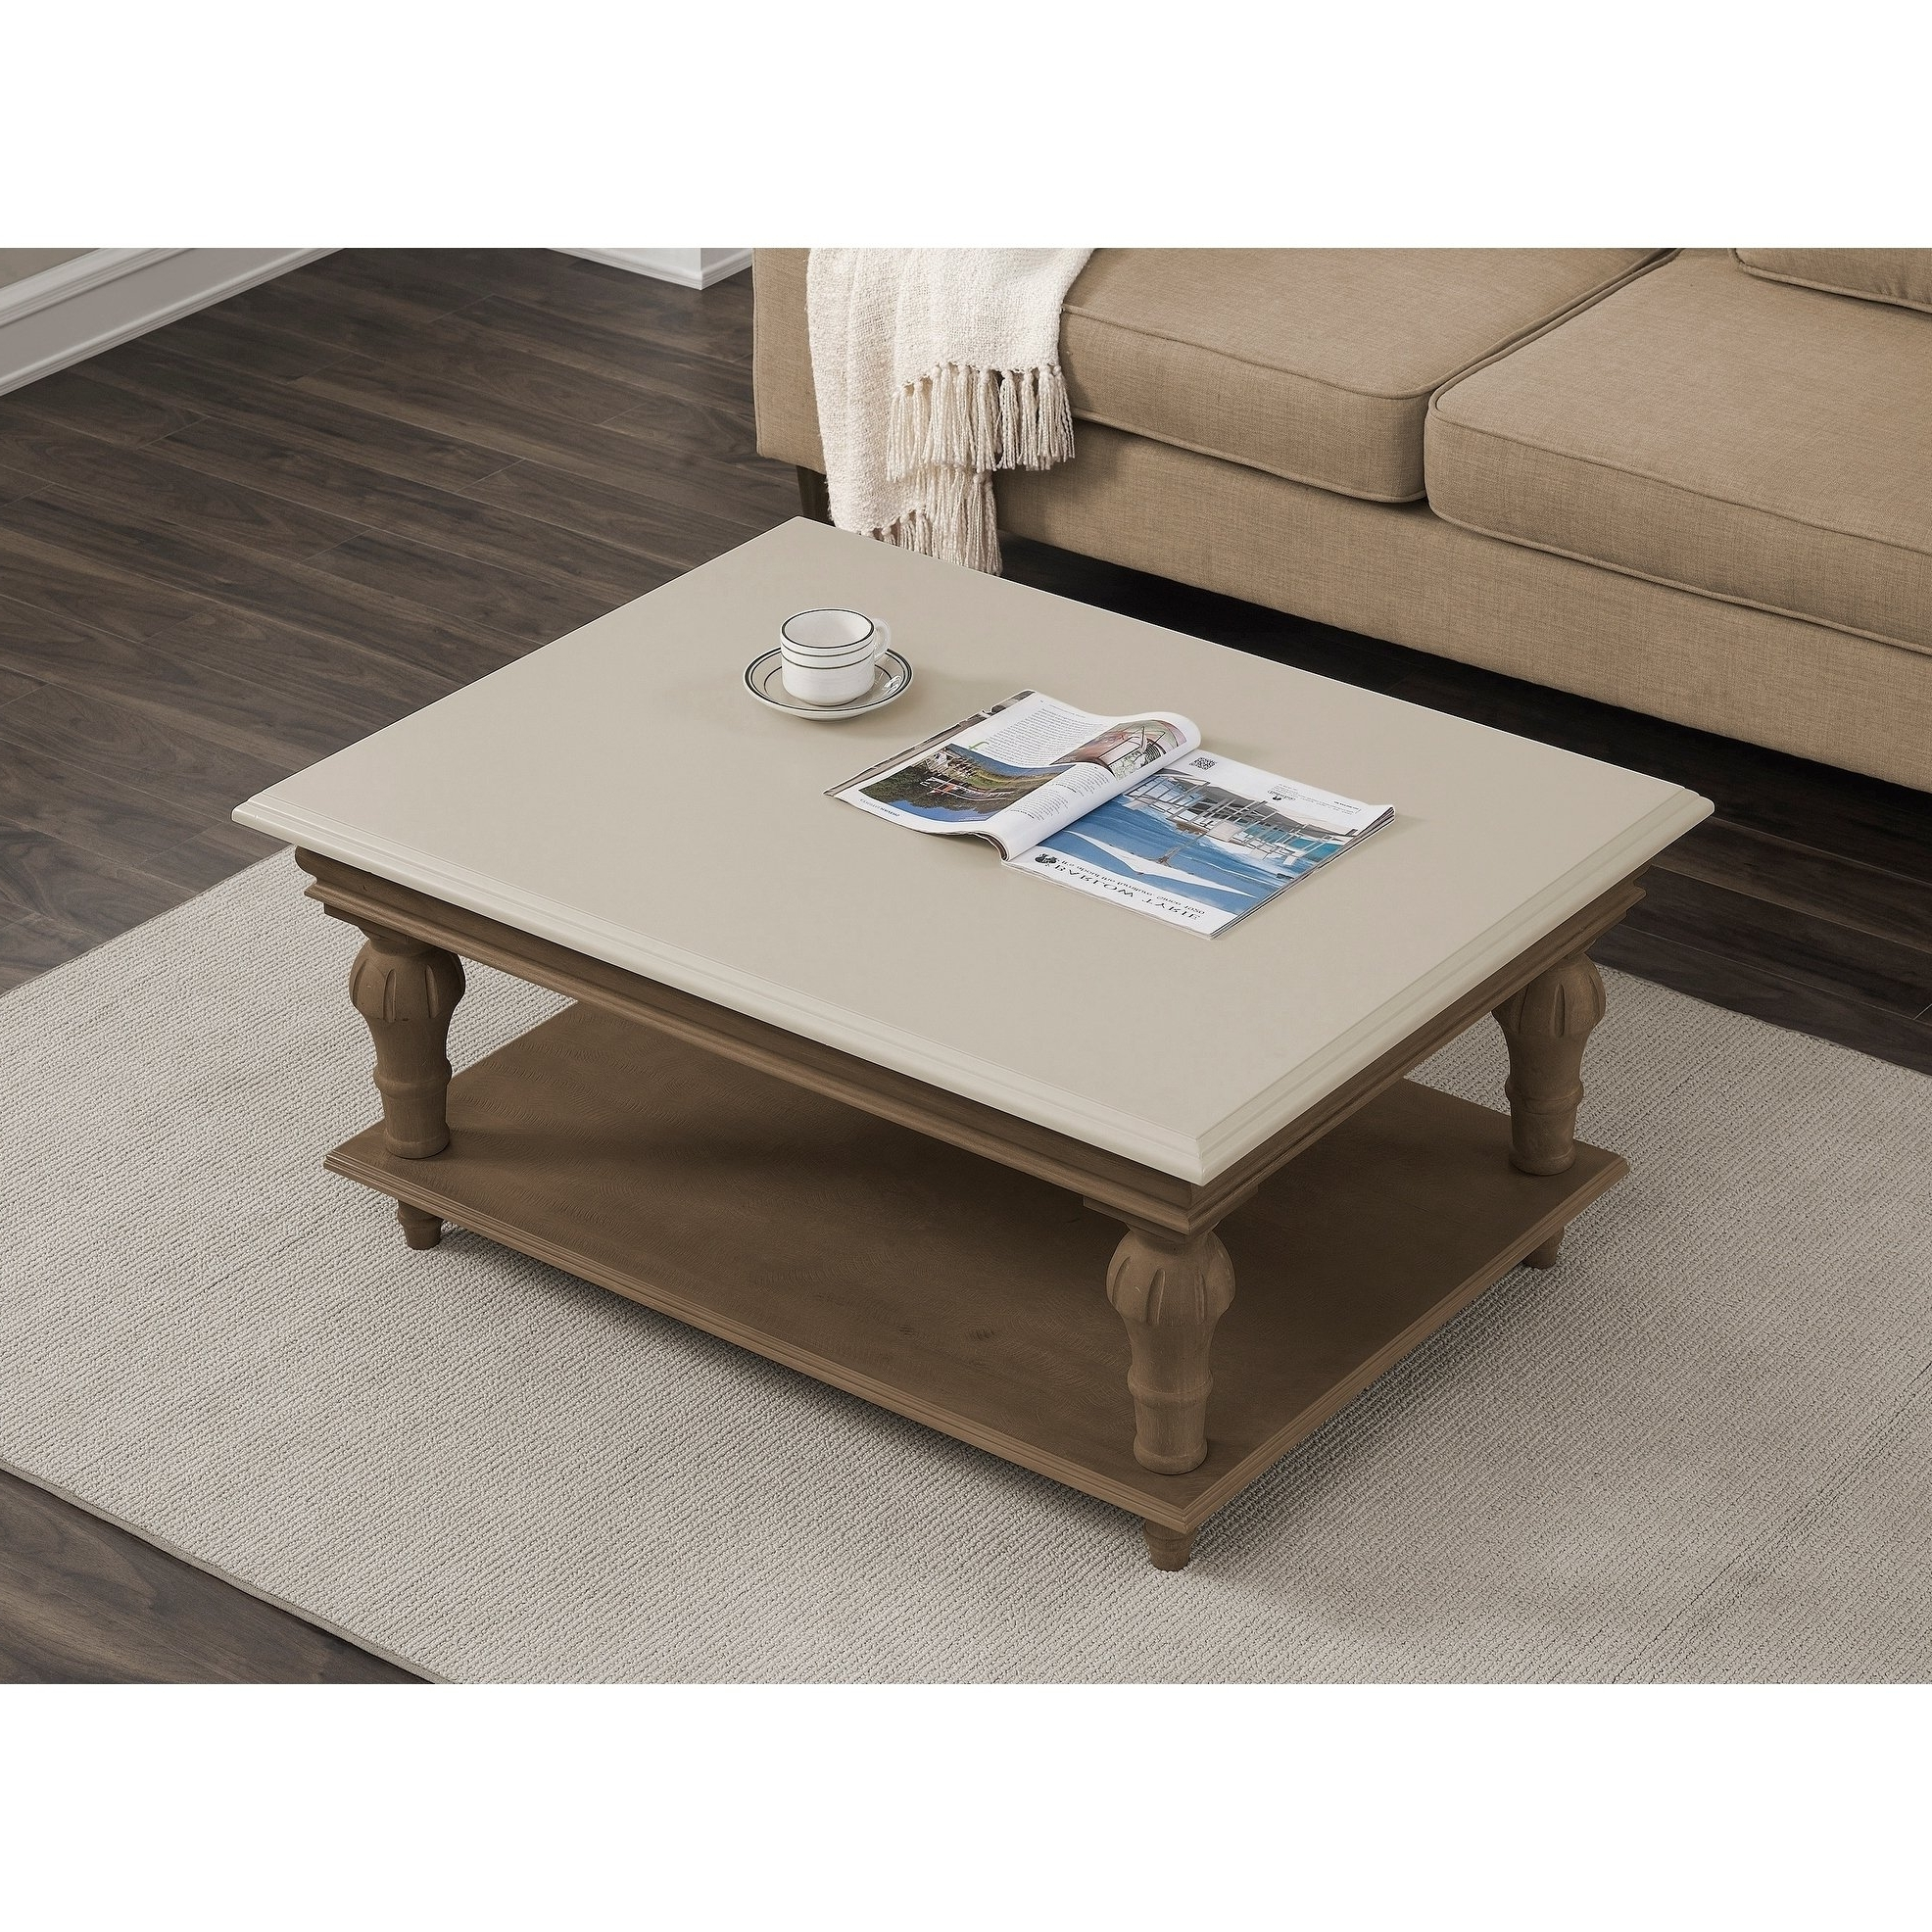 Shop Elements Cream Wood Coffee Table – Free Shipping Today With Regard To Recent Element Ivory Rectangular Coffee Tables (View 16 of 20)